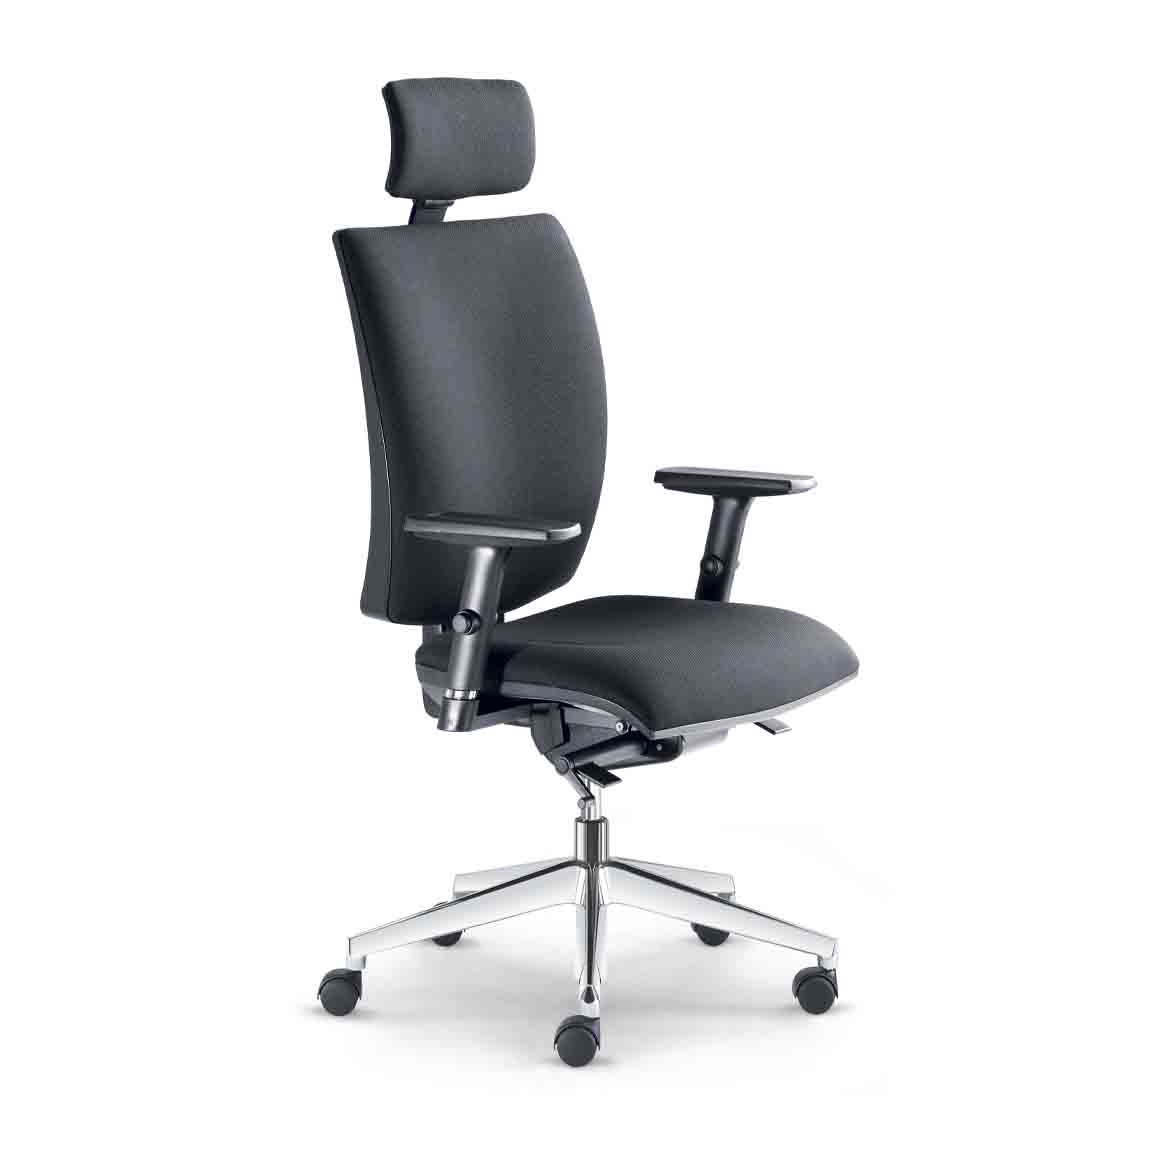 Office chair with high backrest, adjustable upholstered headrest, synchronous mechanism with side tention adjustment, height-adjustable backrest, black nylon five-star base, castors, pneumatic lift mechanism.